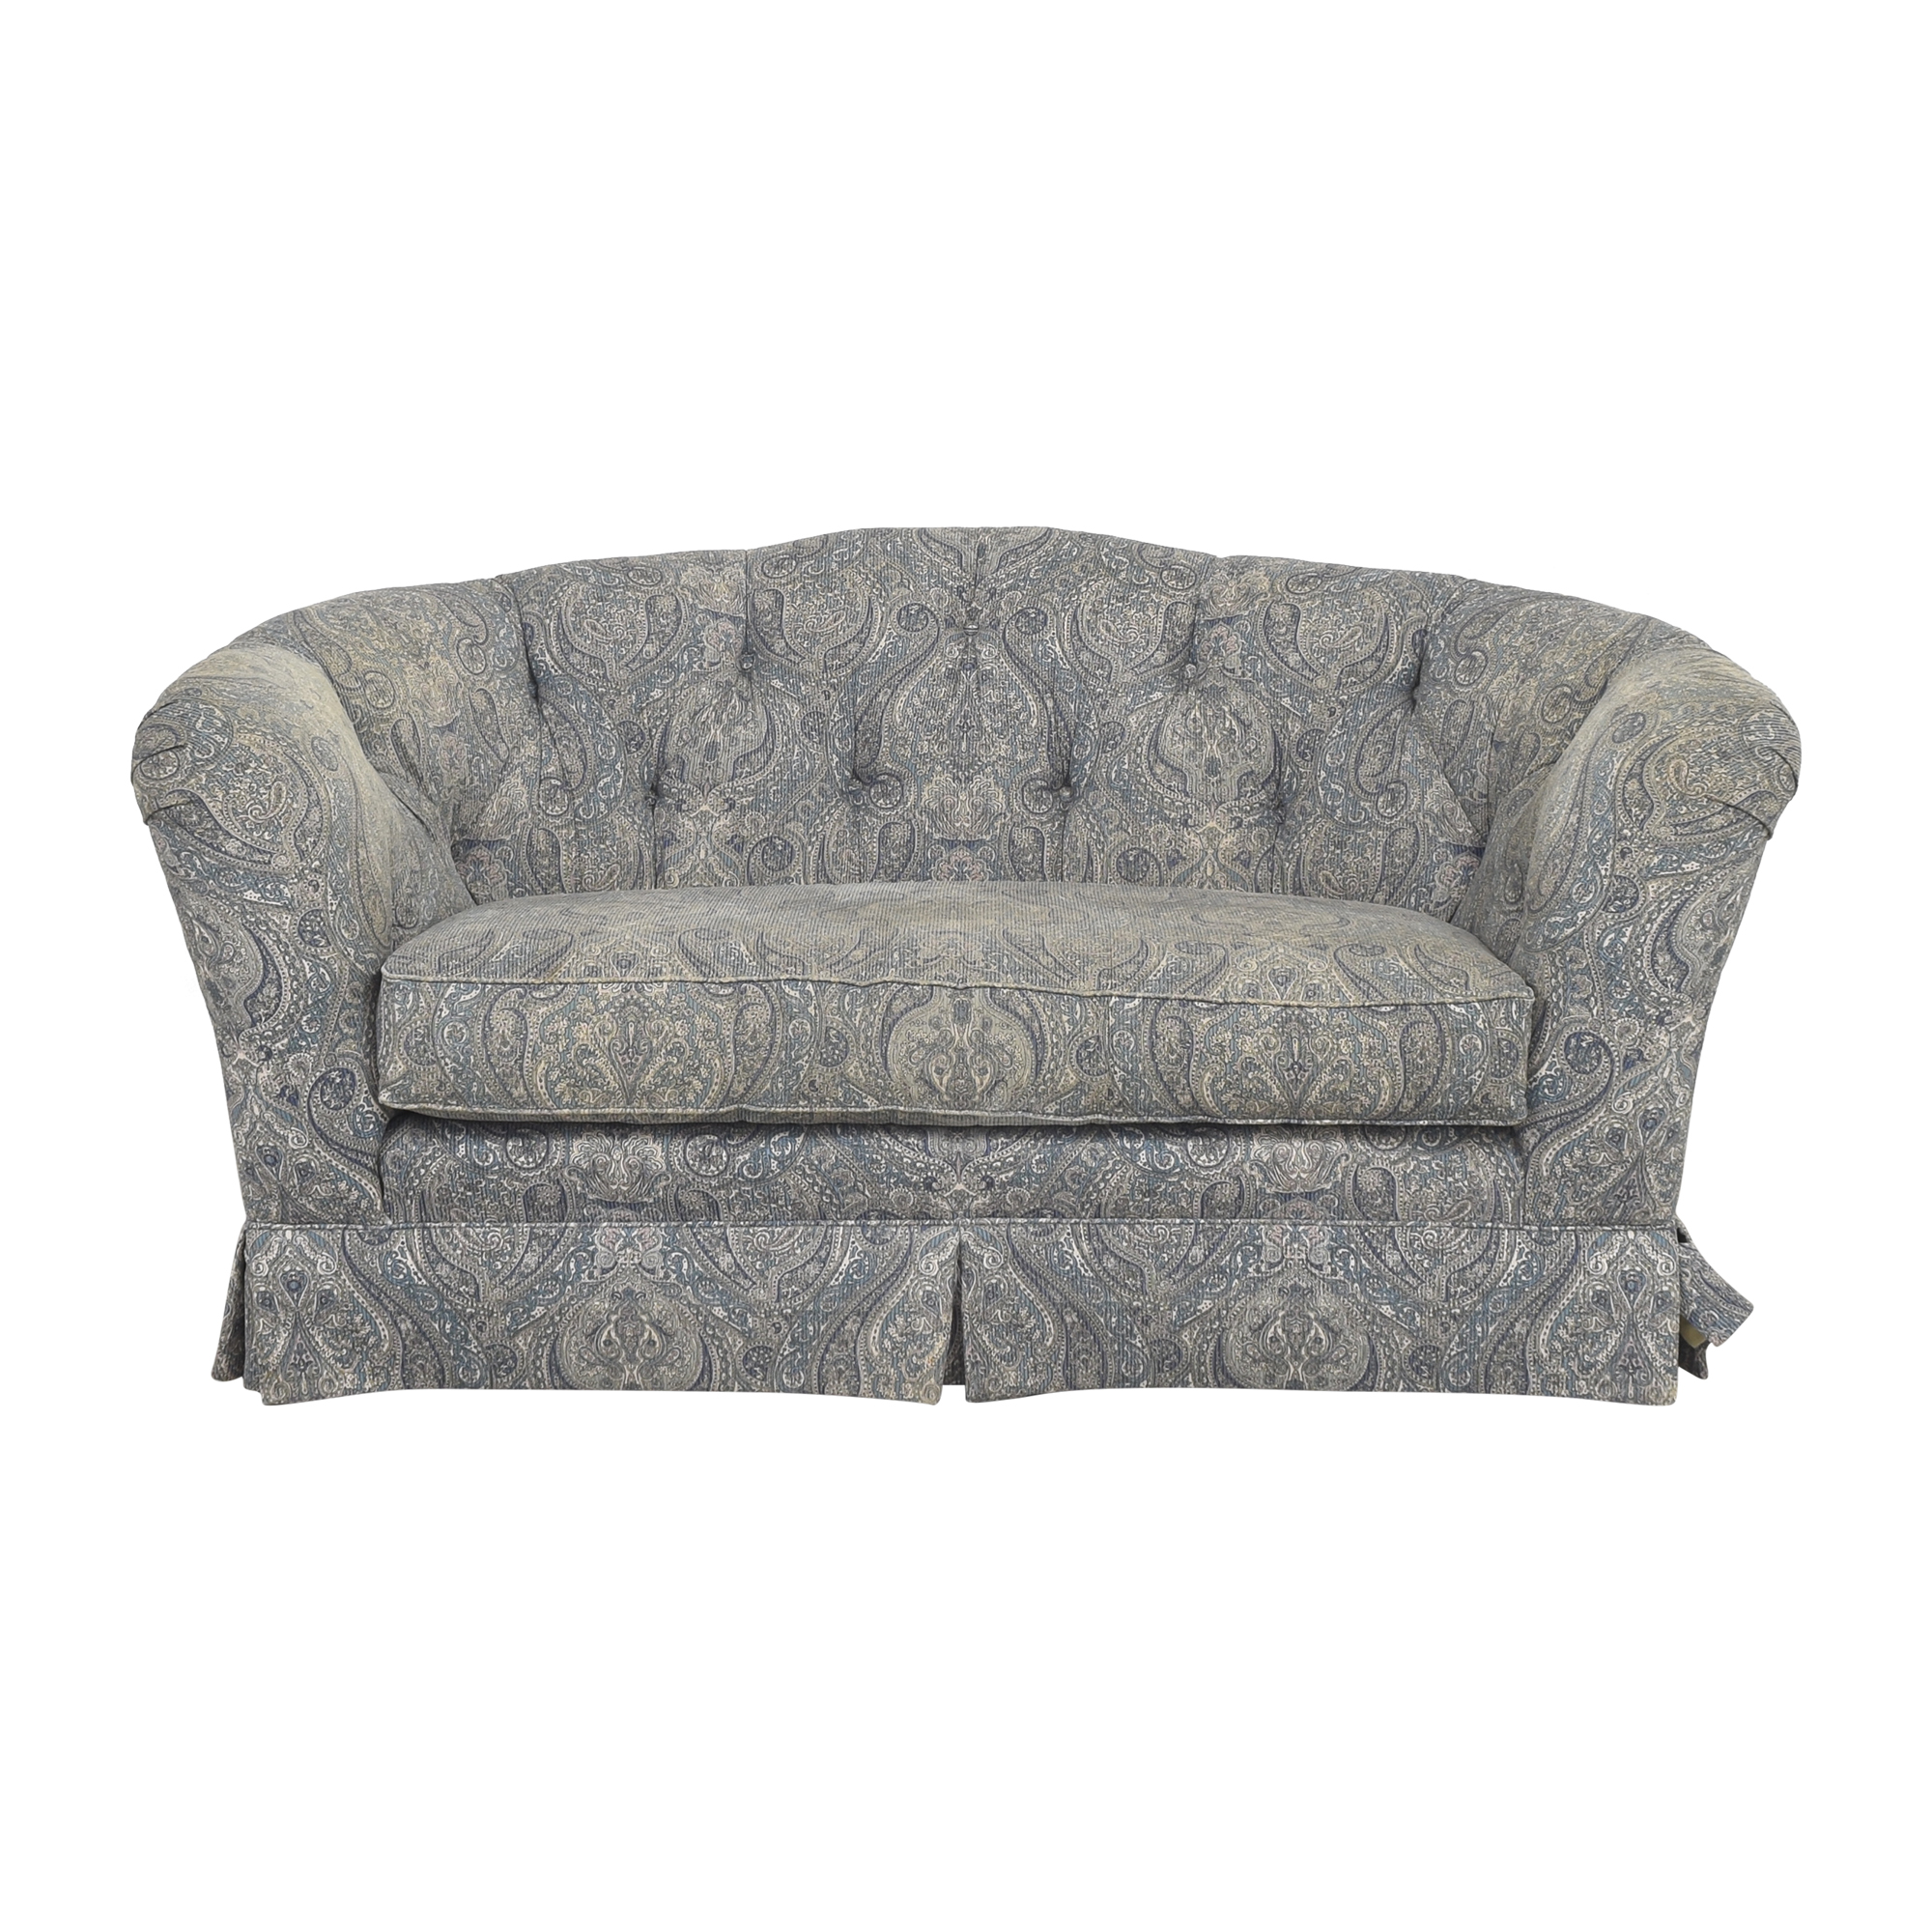 Ethan Allen Paisley Tufted Loveseat sale